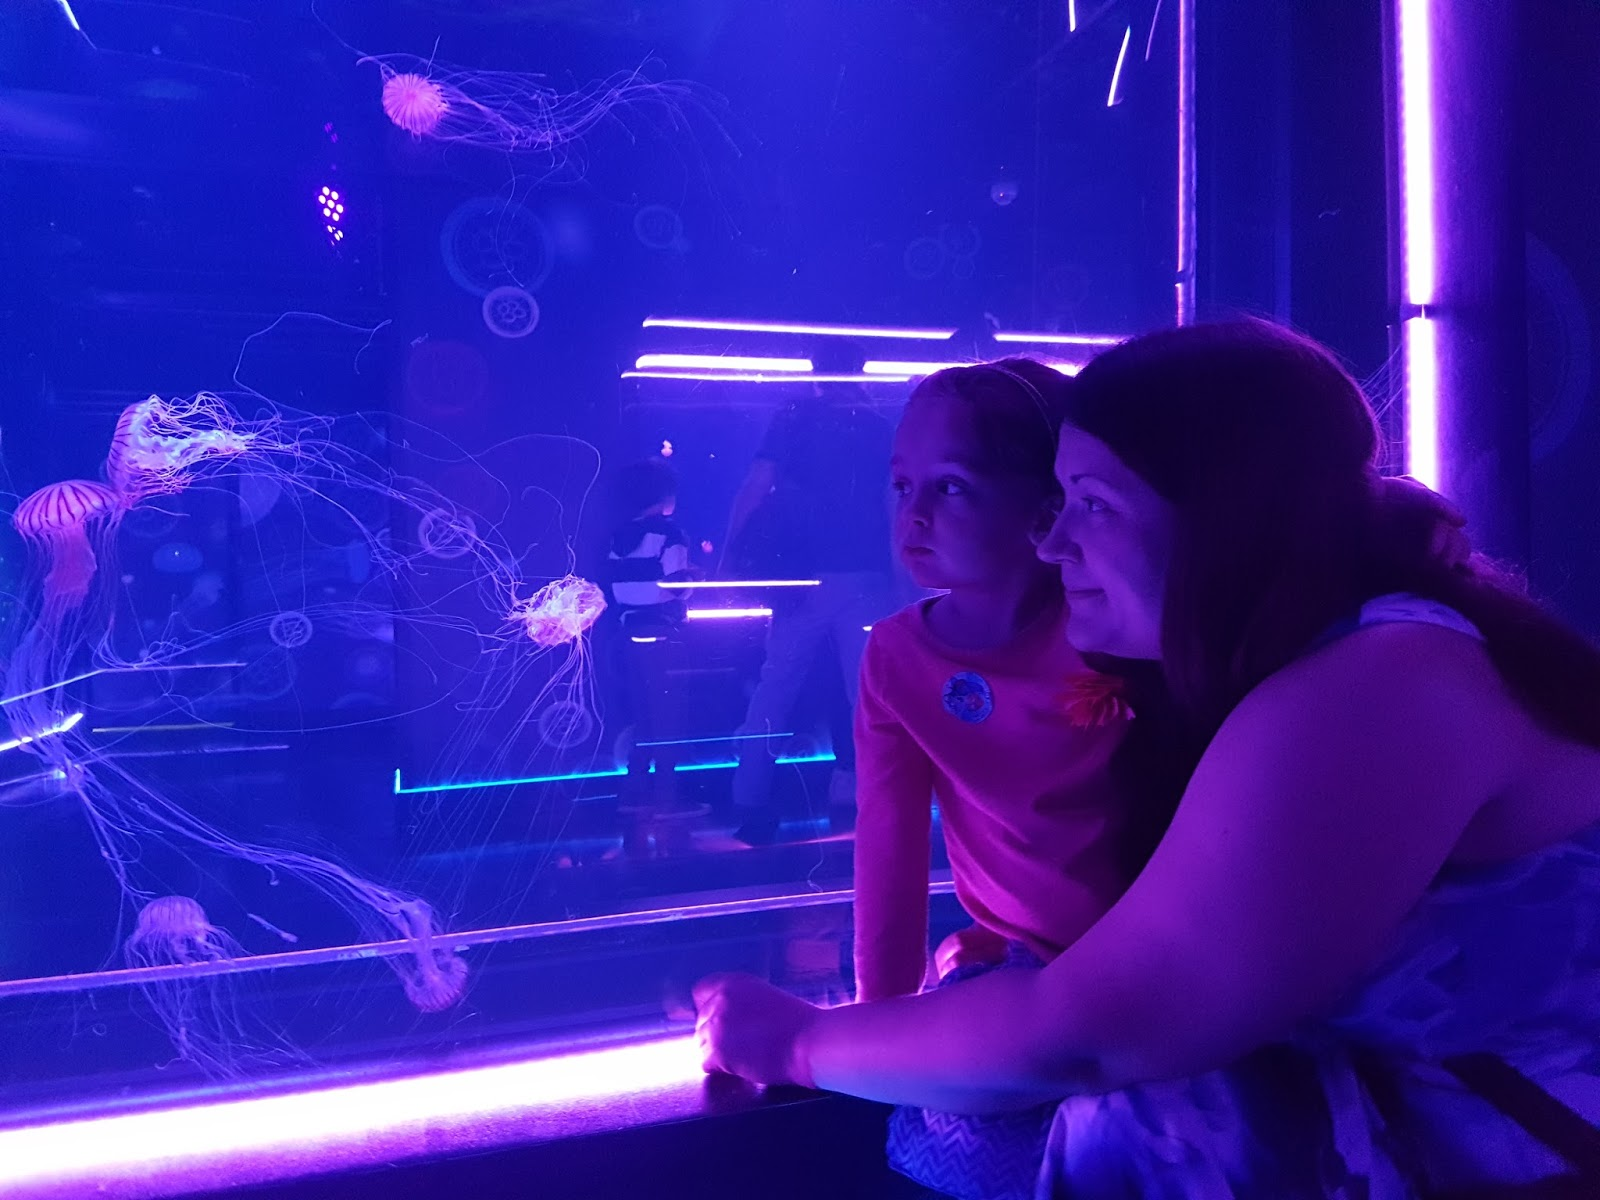 mum and daughter watching jellyfish